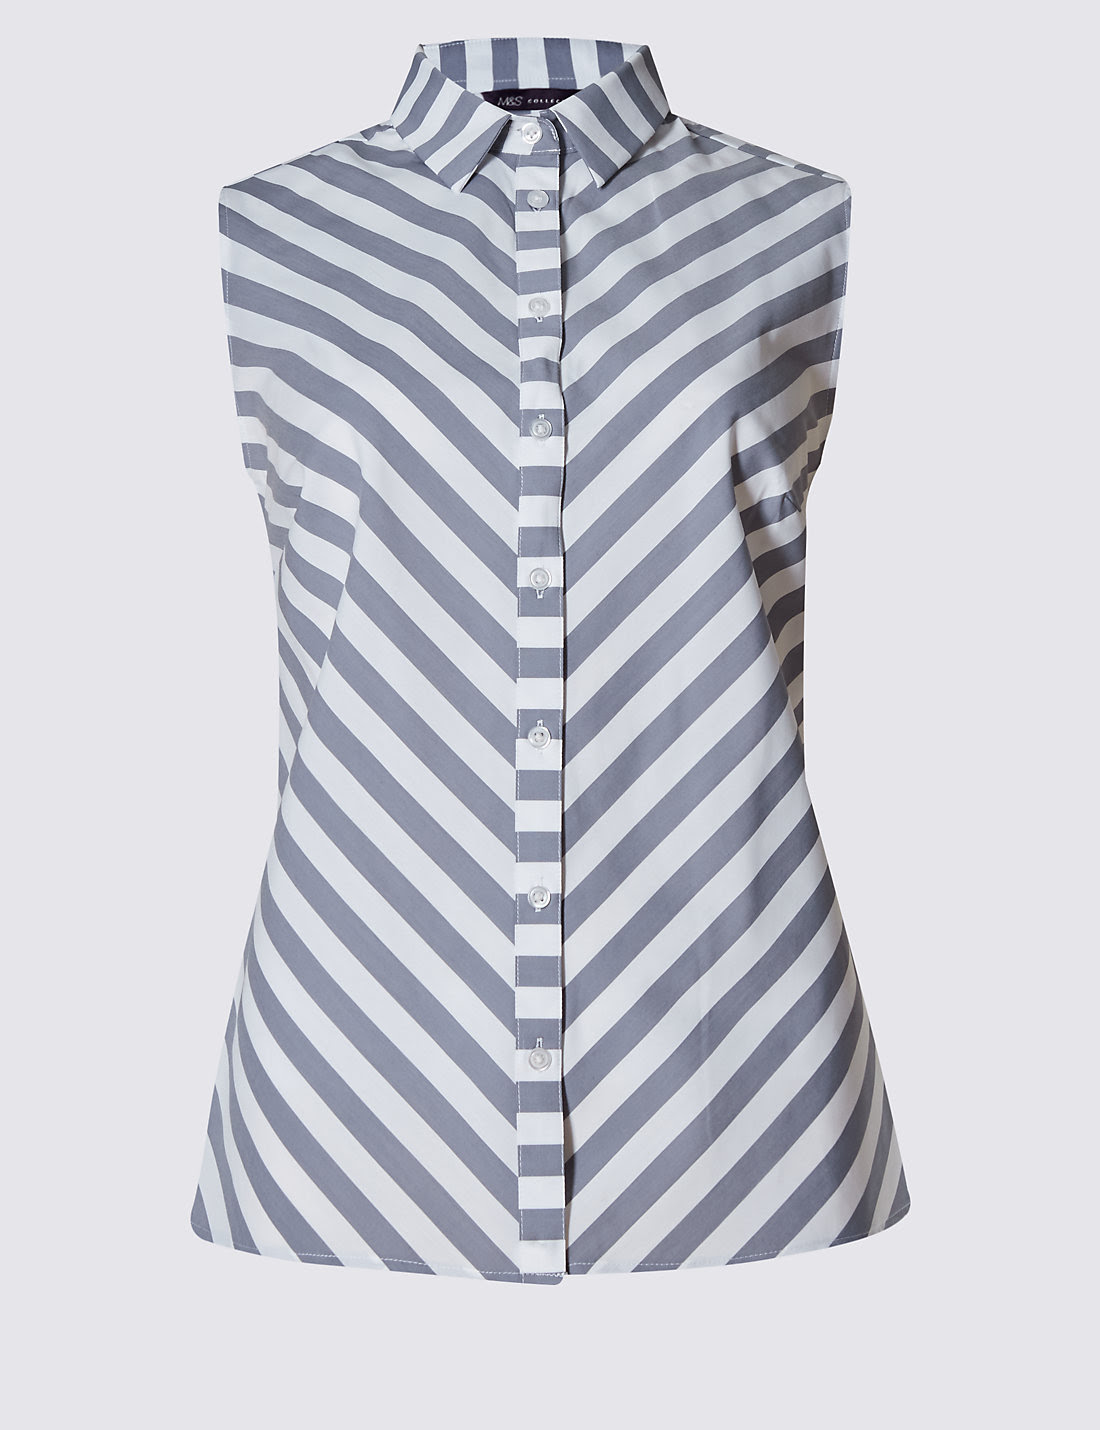 Chevron Striped Shirt